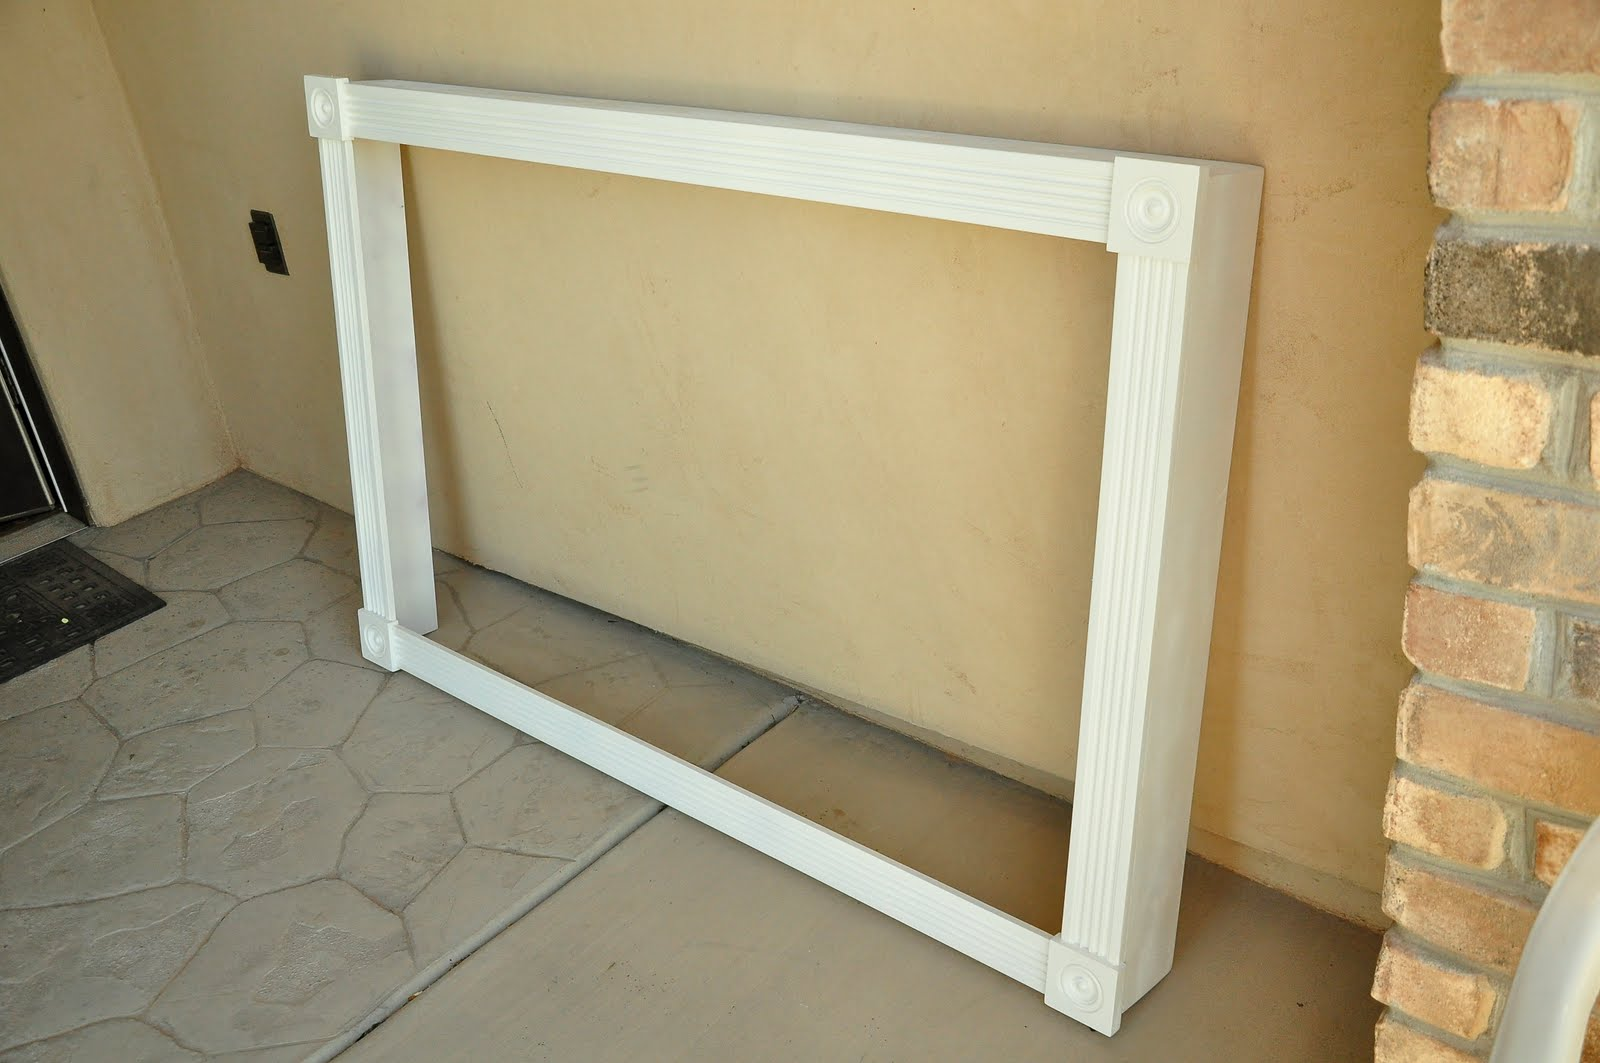 Wall Mounted TV Cover | Super Genius | Pinterest